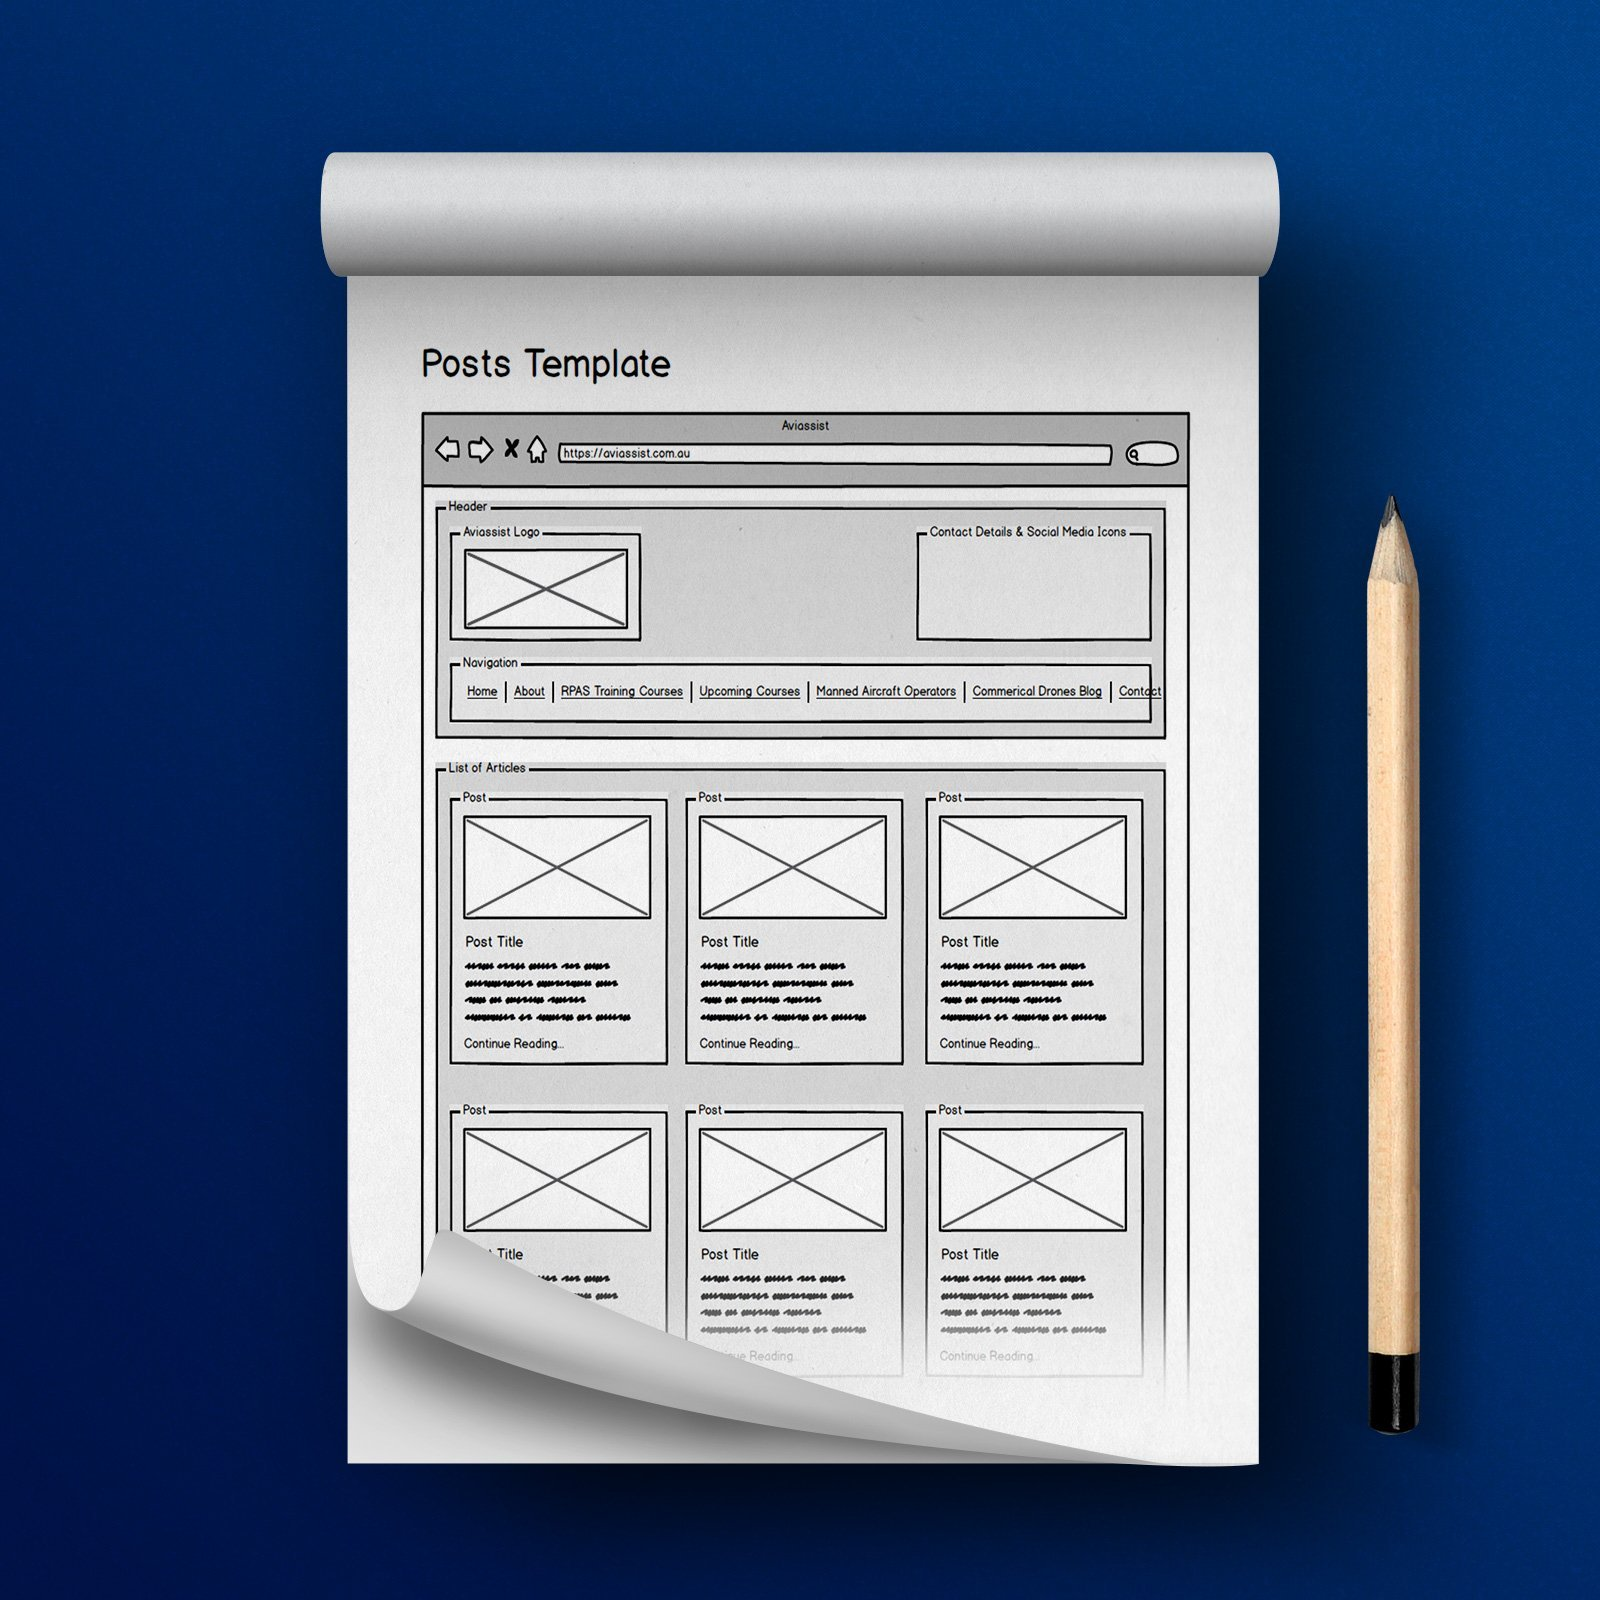 Aviassist Responsive Website Wireframes